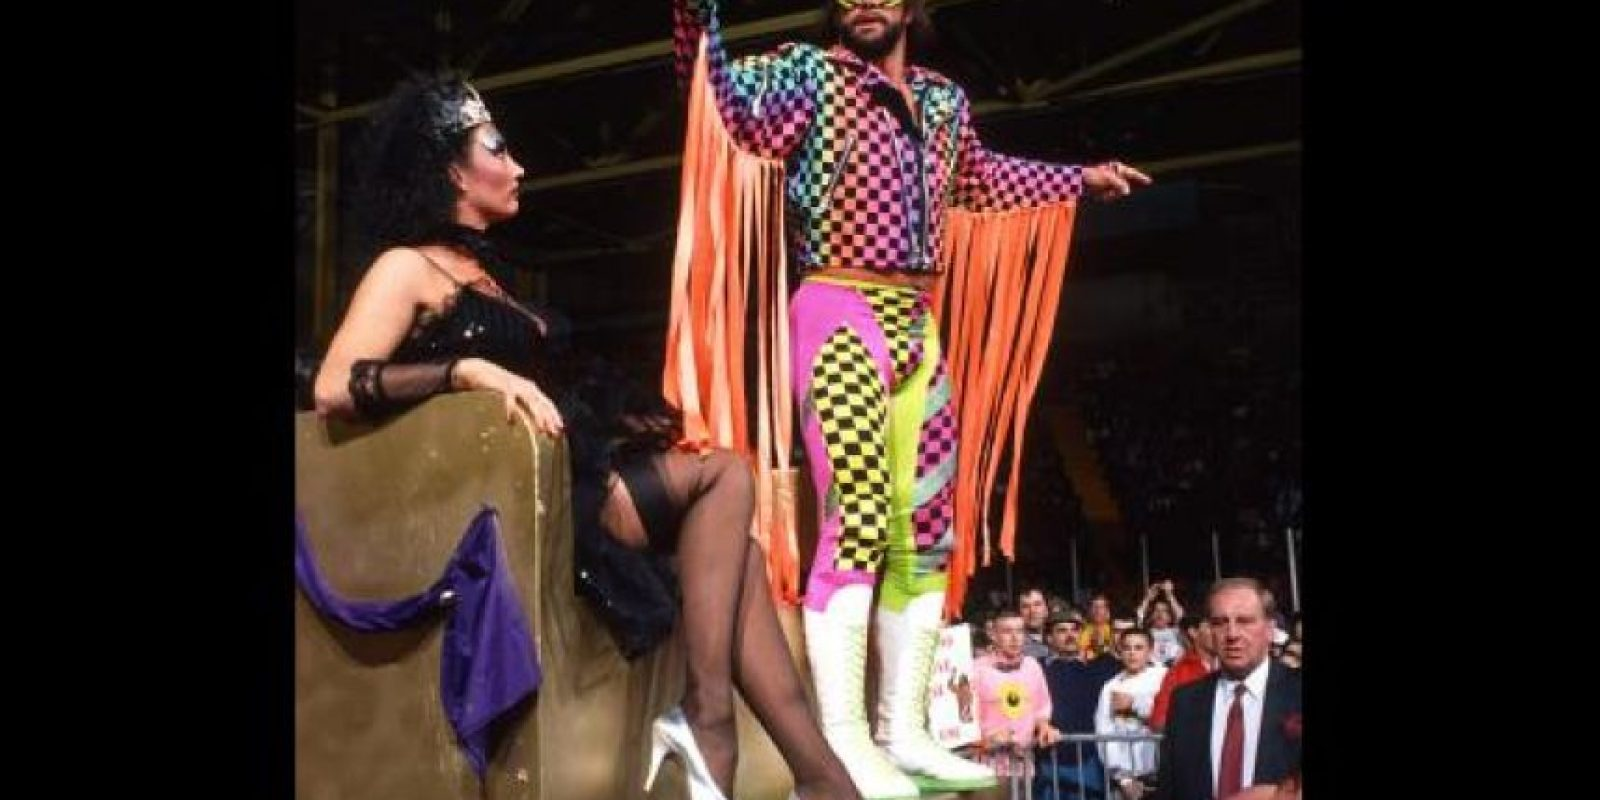 35. Sensational Sherri y Macho King Foto: WWE